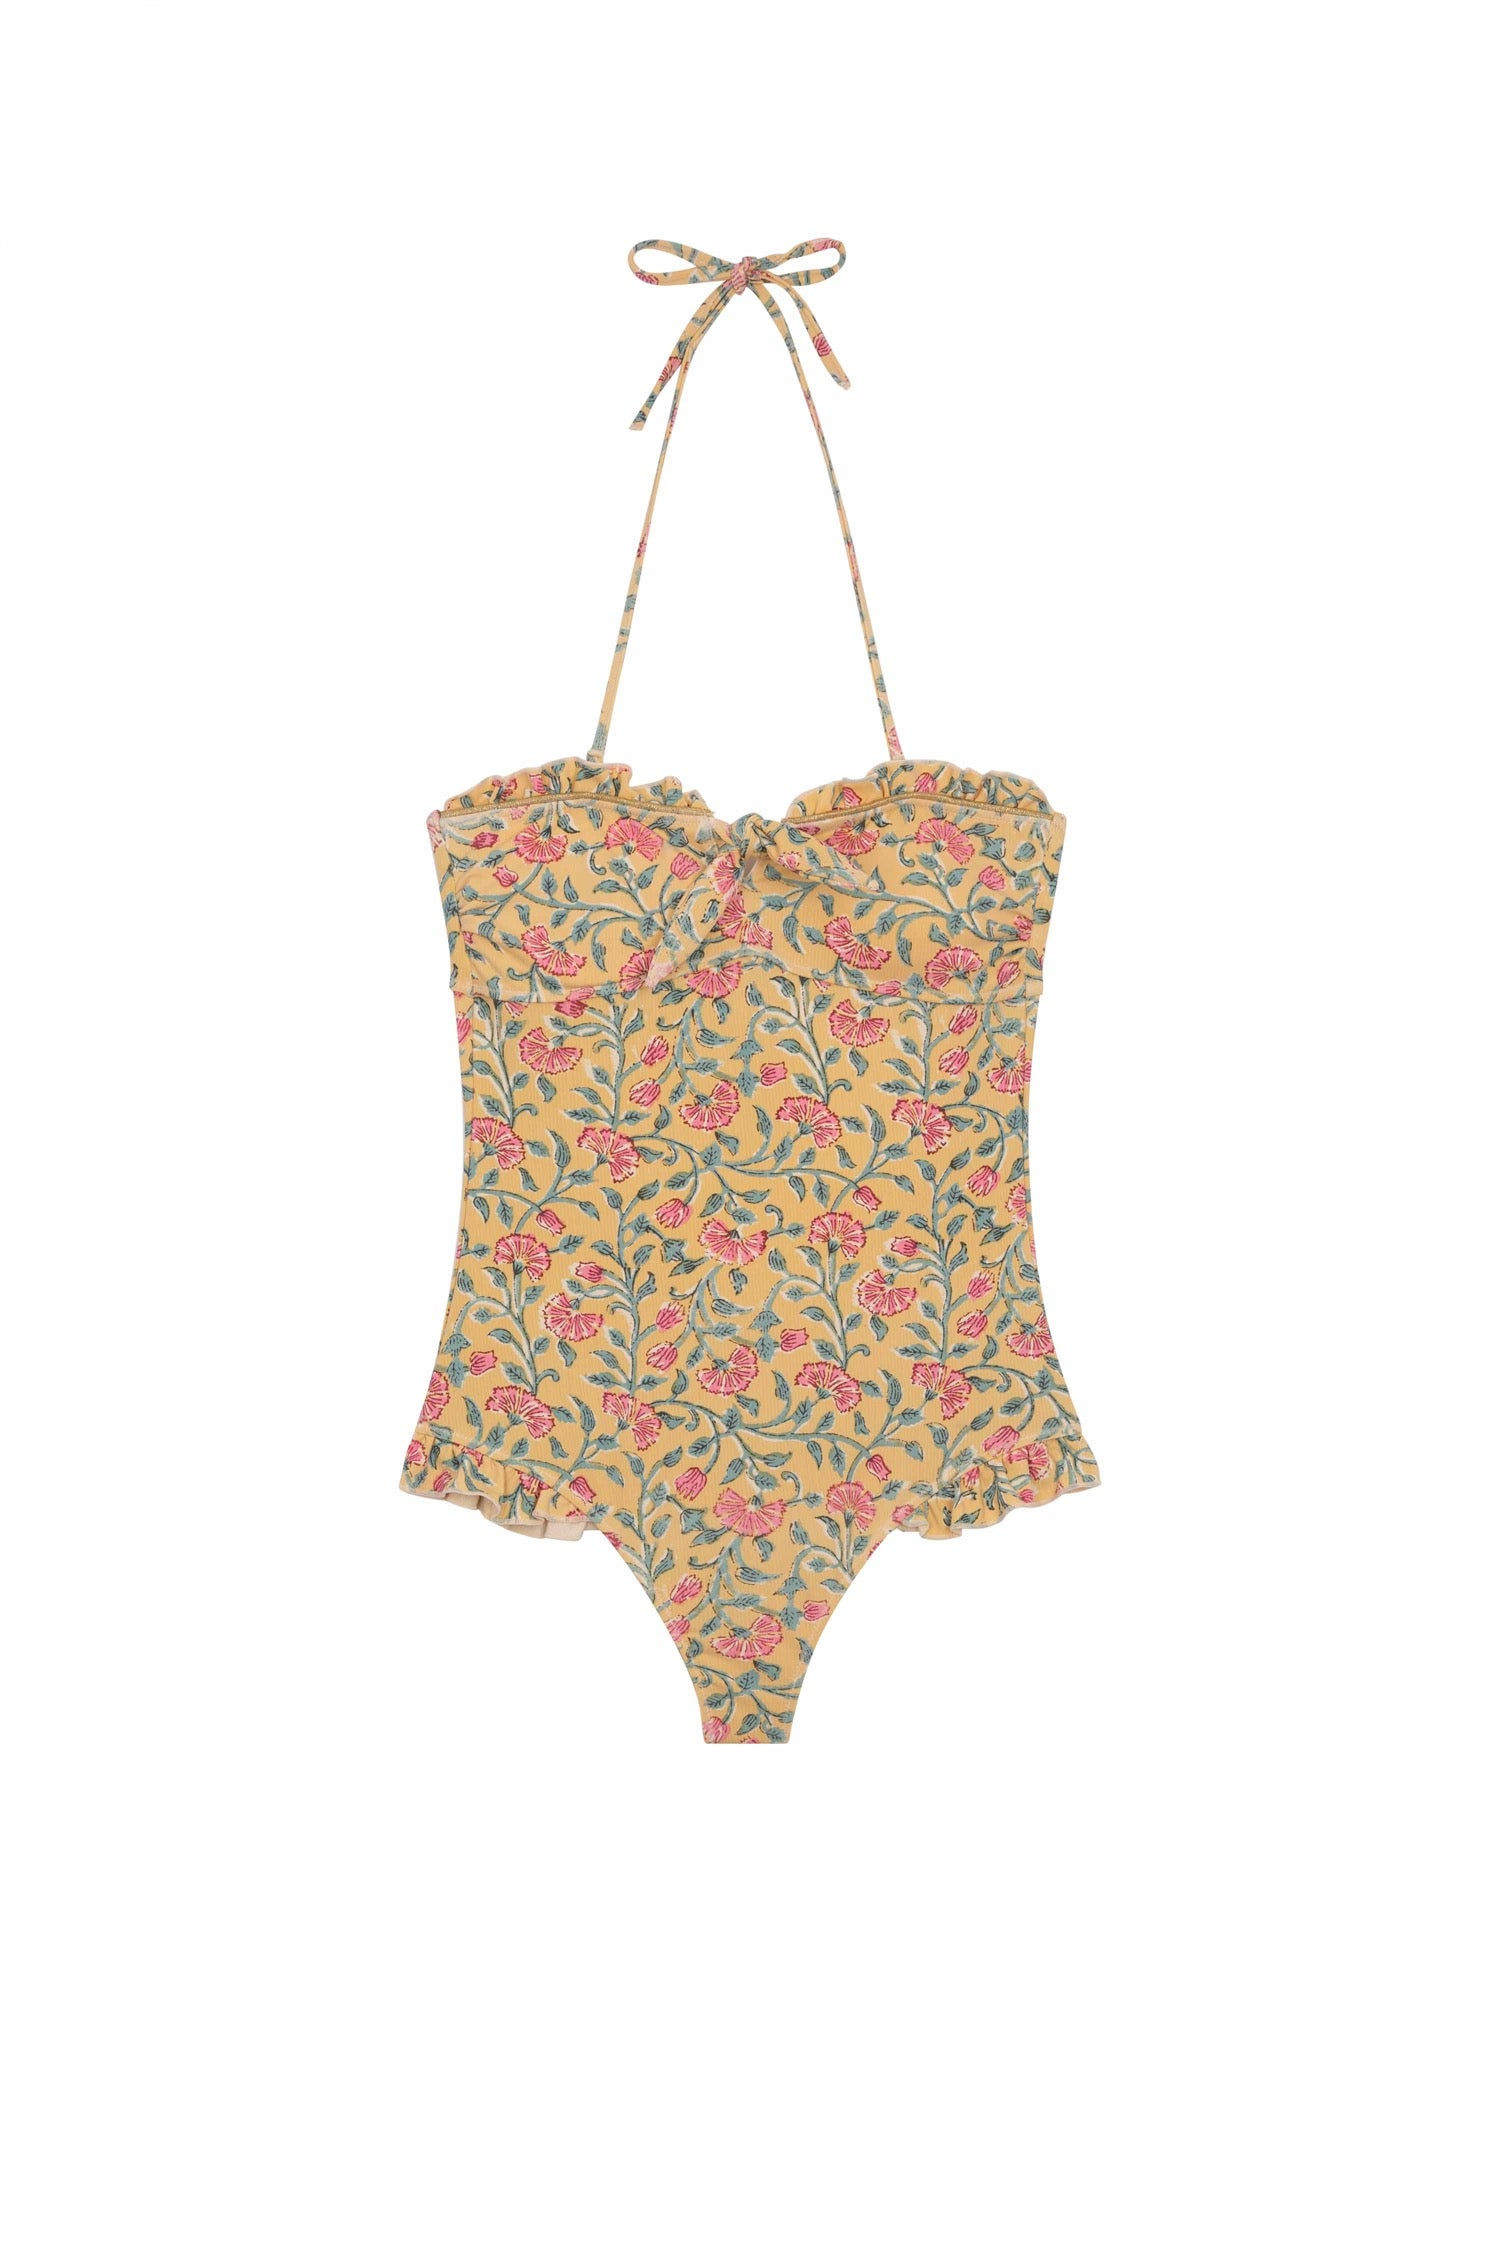 Bathing Suit Bayo Lemon Flowers - Louise Misha